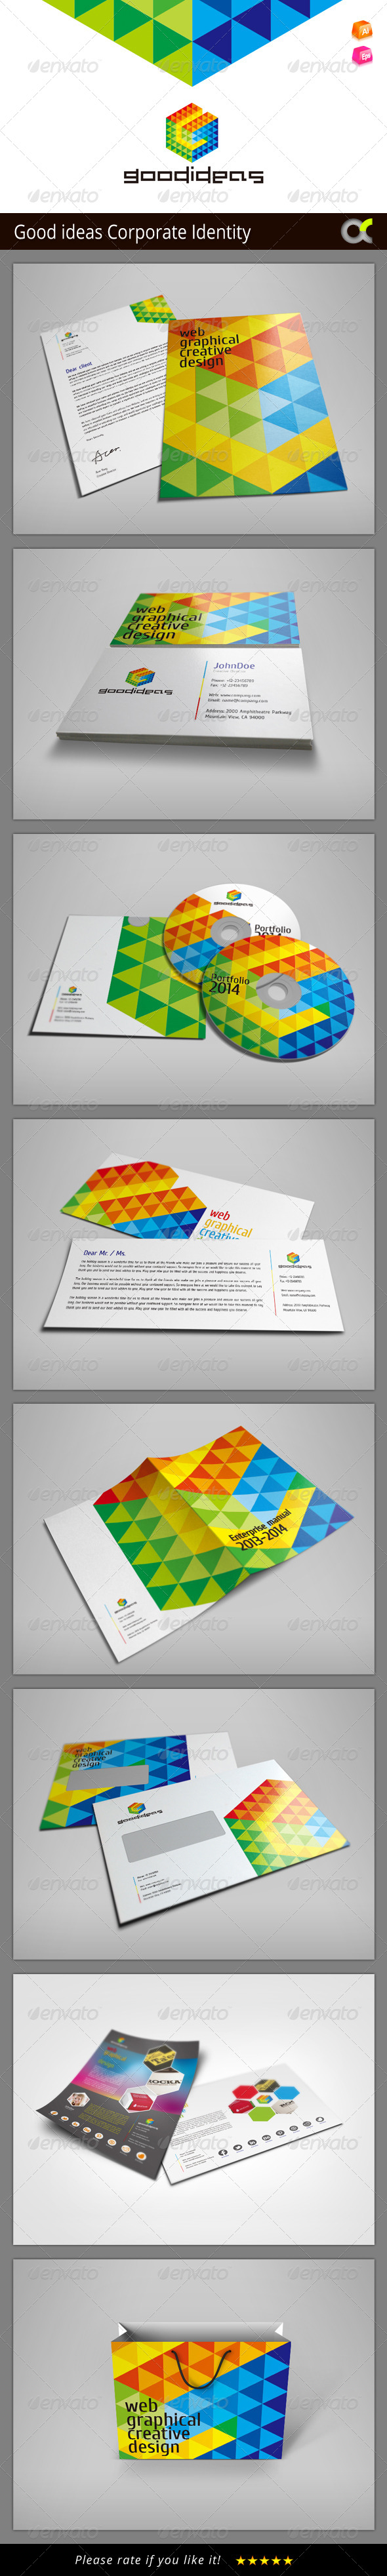 GraphicRiver Good Ideas Corporate Identity 8326640